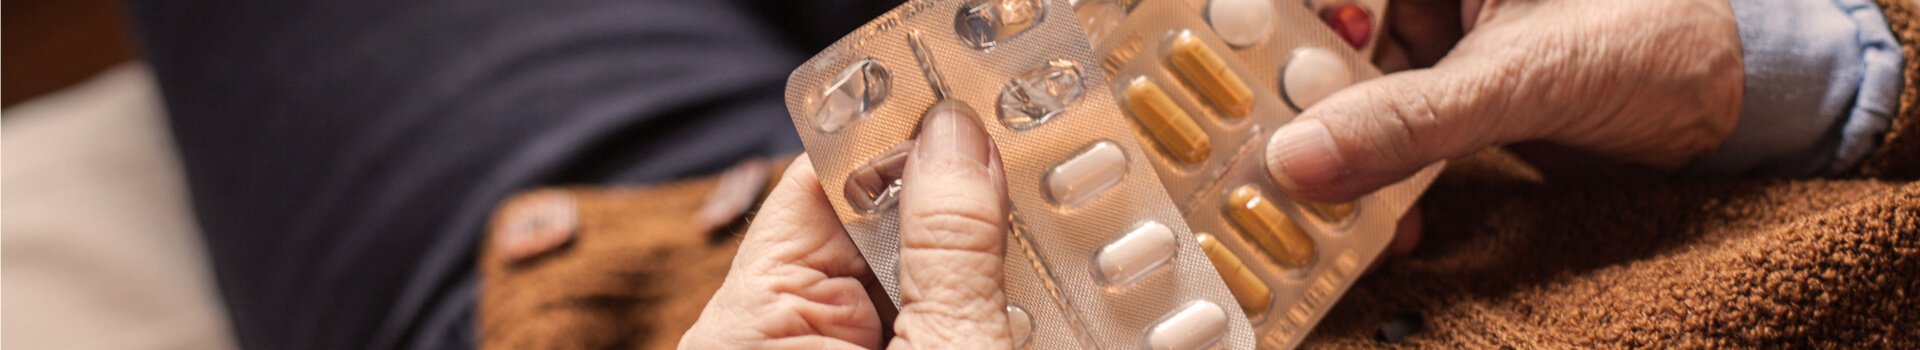 hands of a senior woman holding blisters with prescription medications